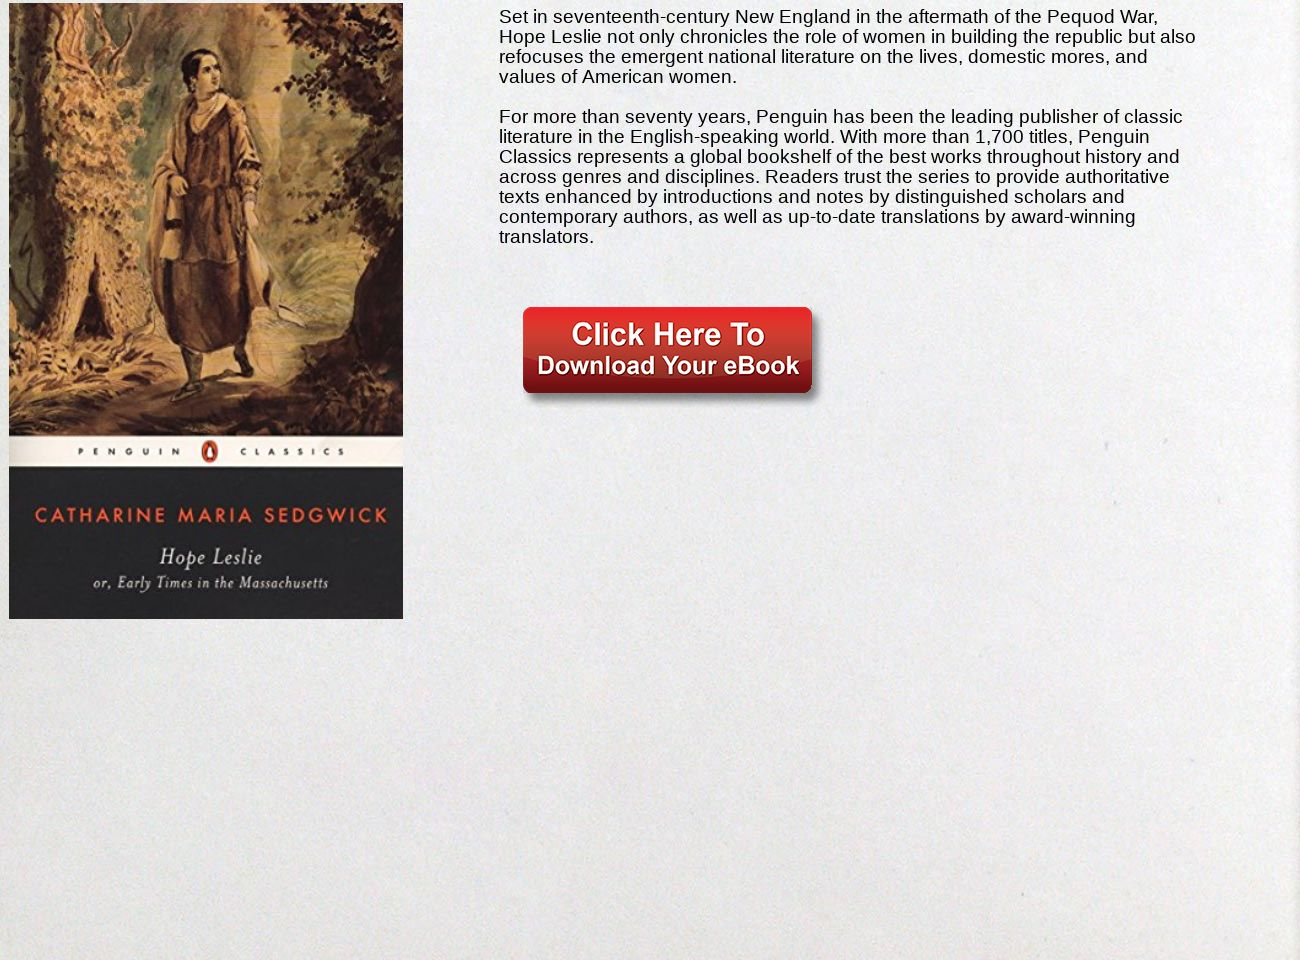 Download Ebook Hope Leslie: or, Early Times in the Massachusetts